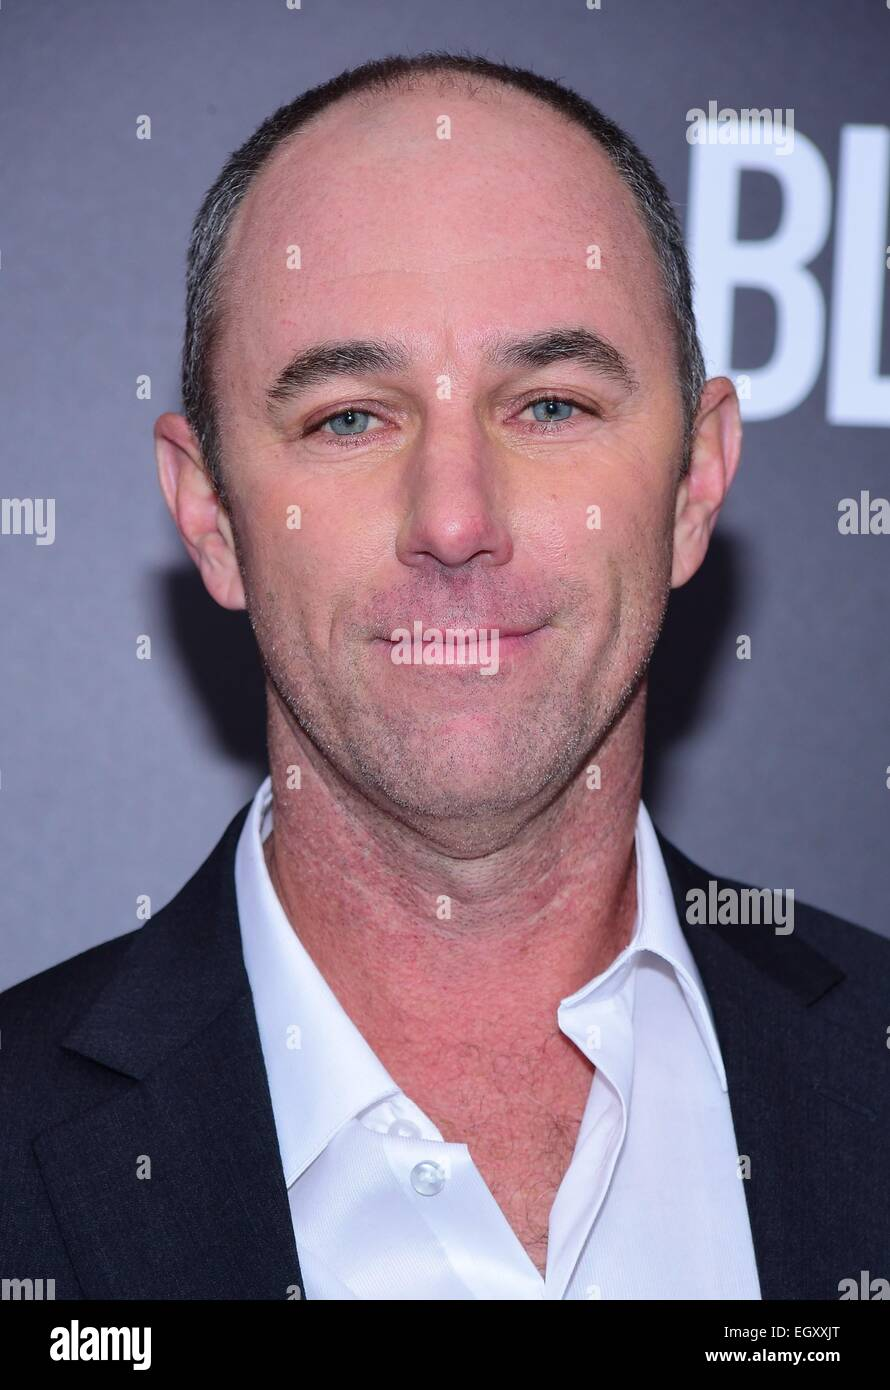 New York, <b>NY, USA</b>. 3rd Mar, 2015. Jamie McShane at arrivals for BLOODLINE <b>...</b> - new-york-ny-usa-3rd-mar-2015-jamie-mcshane-at-arrivals-for-bloodline-EGXXJT